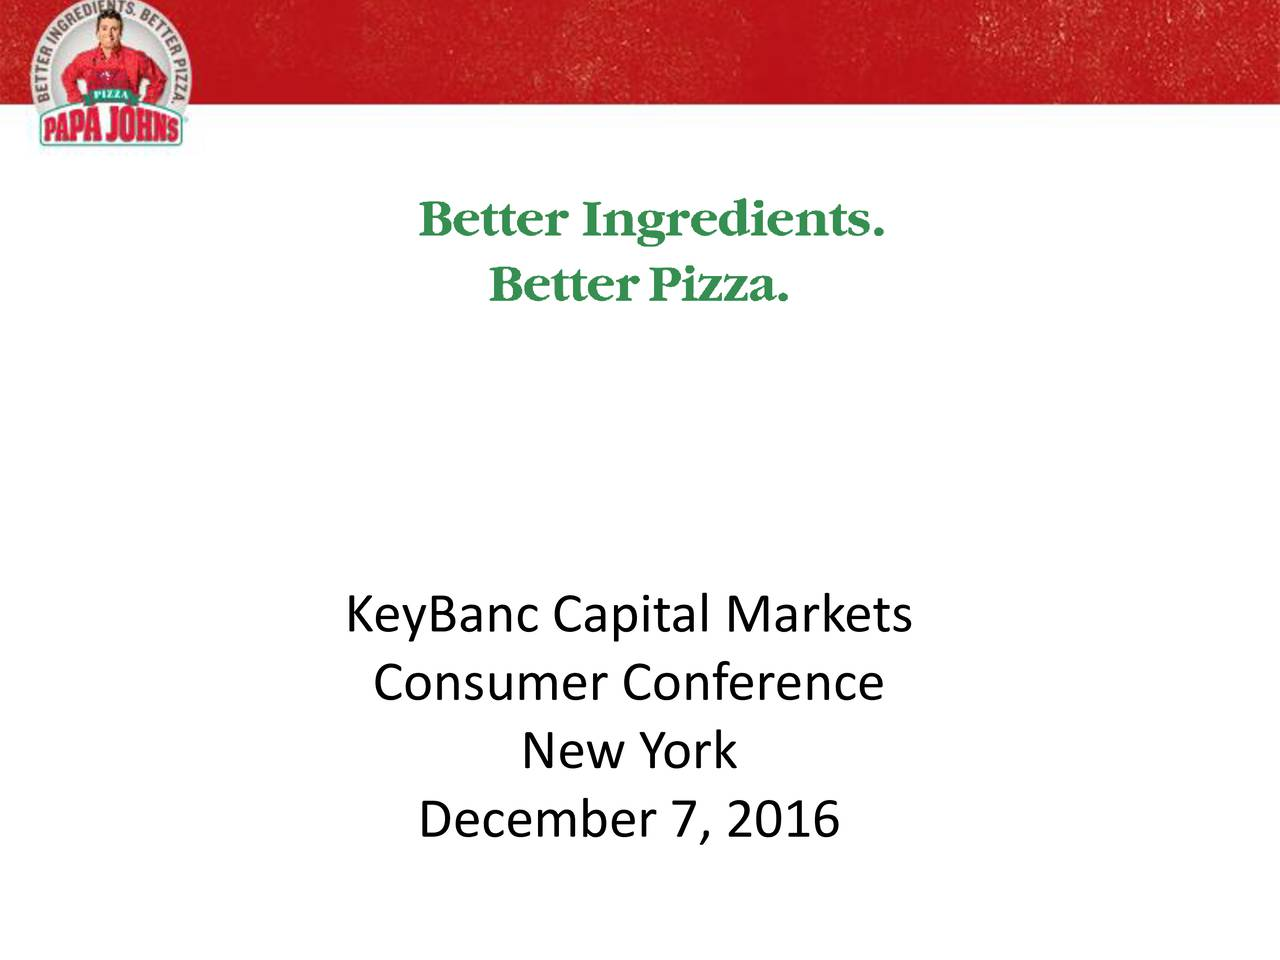 Consumer Conference New York December 7, 2016